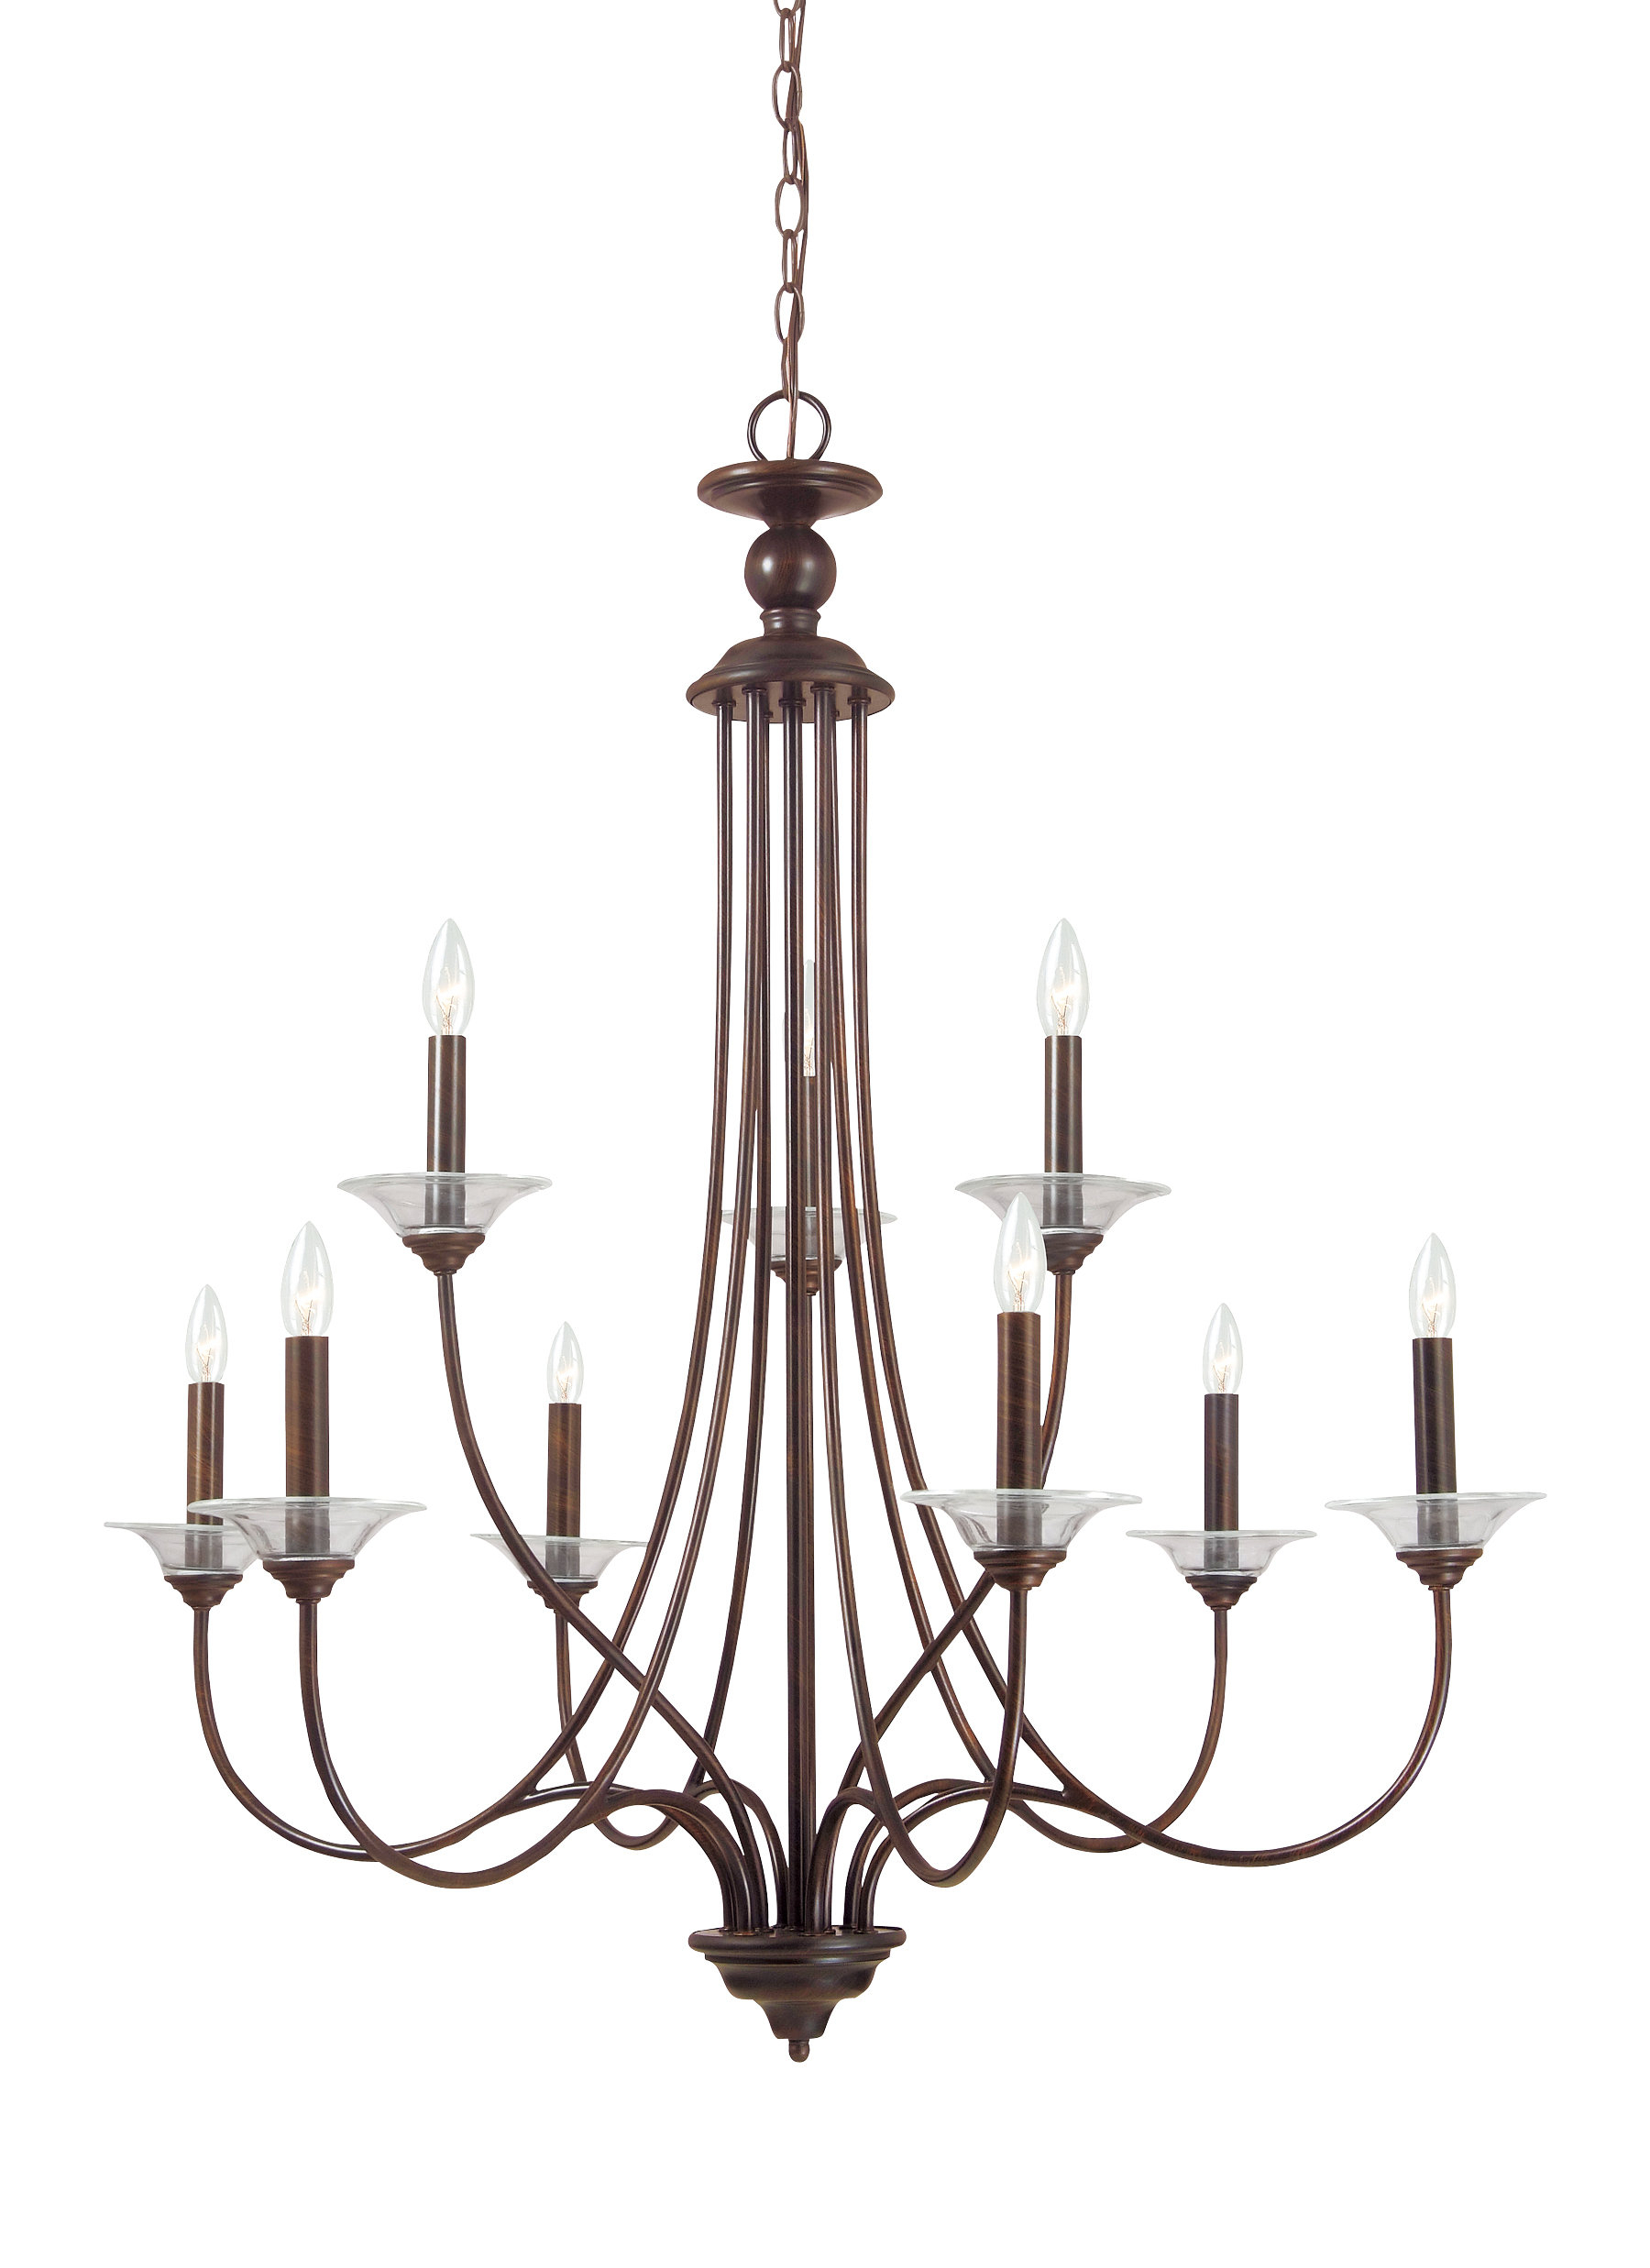 Barbro 9 Light Chandelier For Berger 5 Light Candle Style Chandeliers (View 12 of 30)